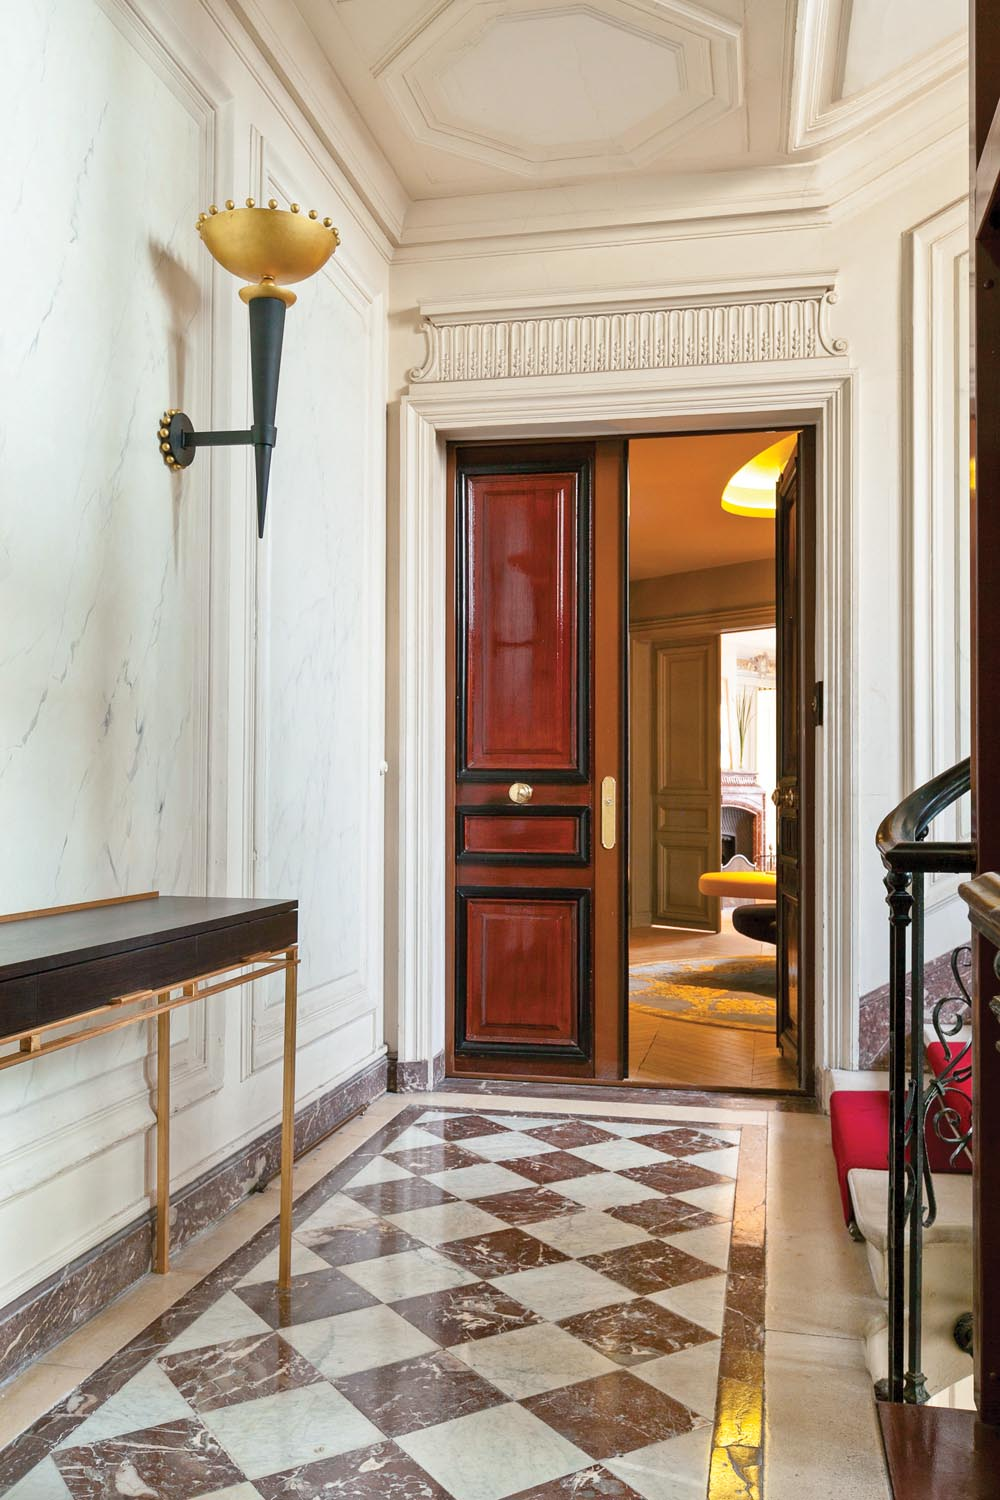 Artists were called upon to restore the traditional mouldings